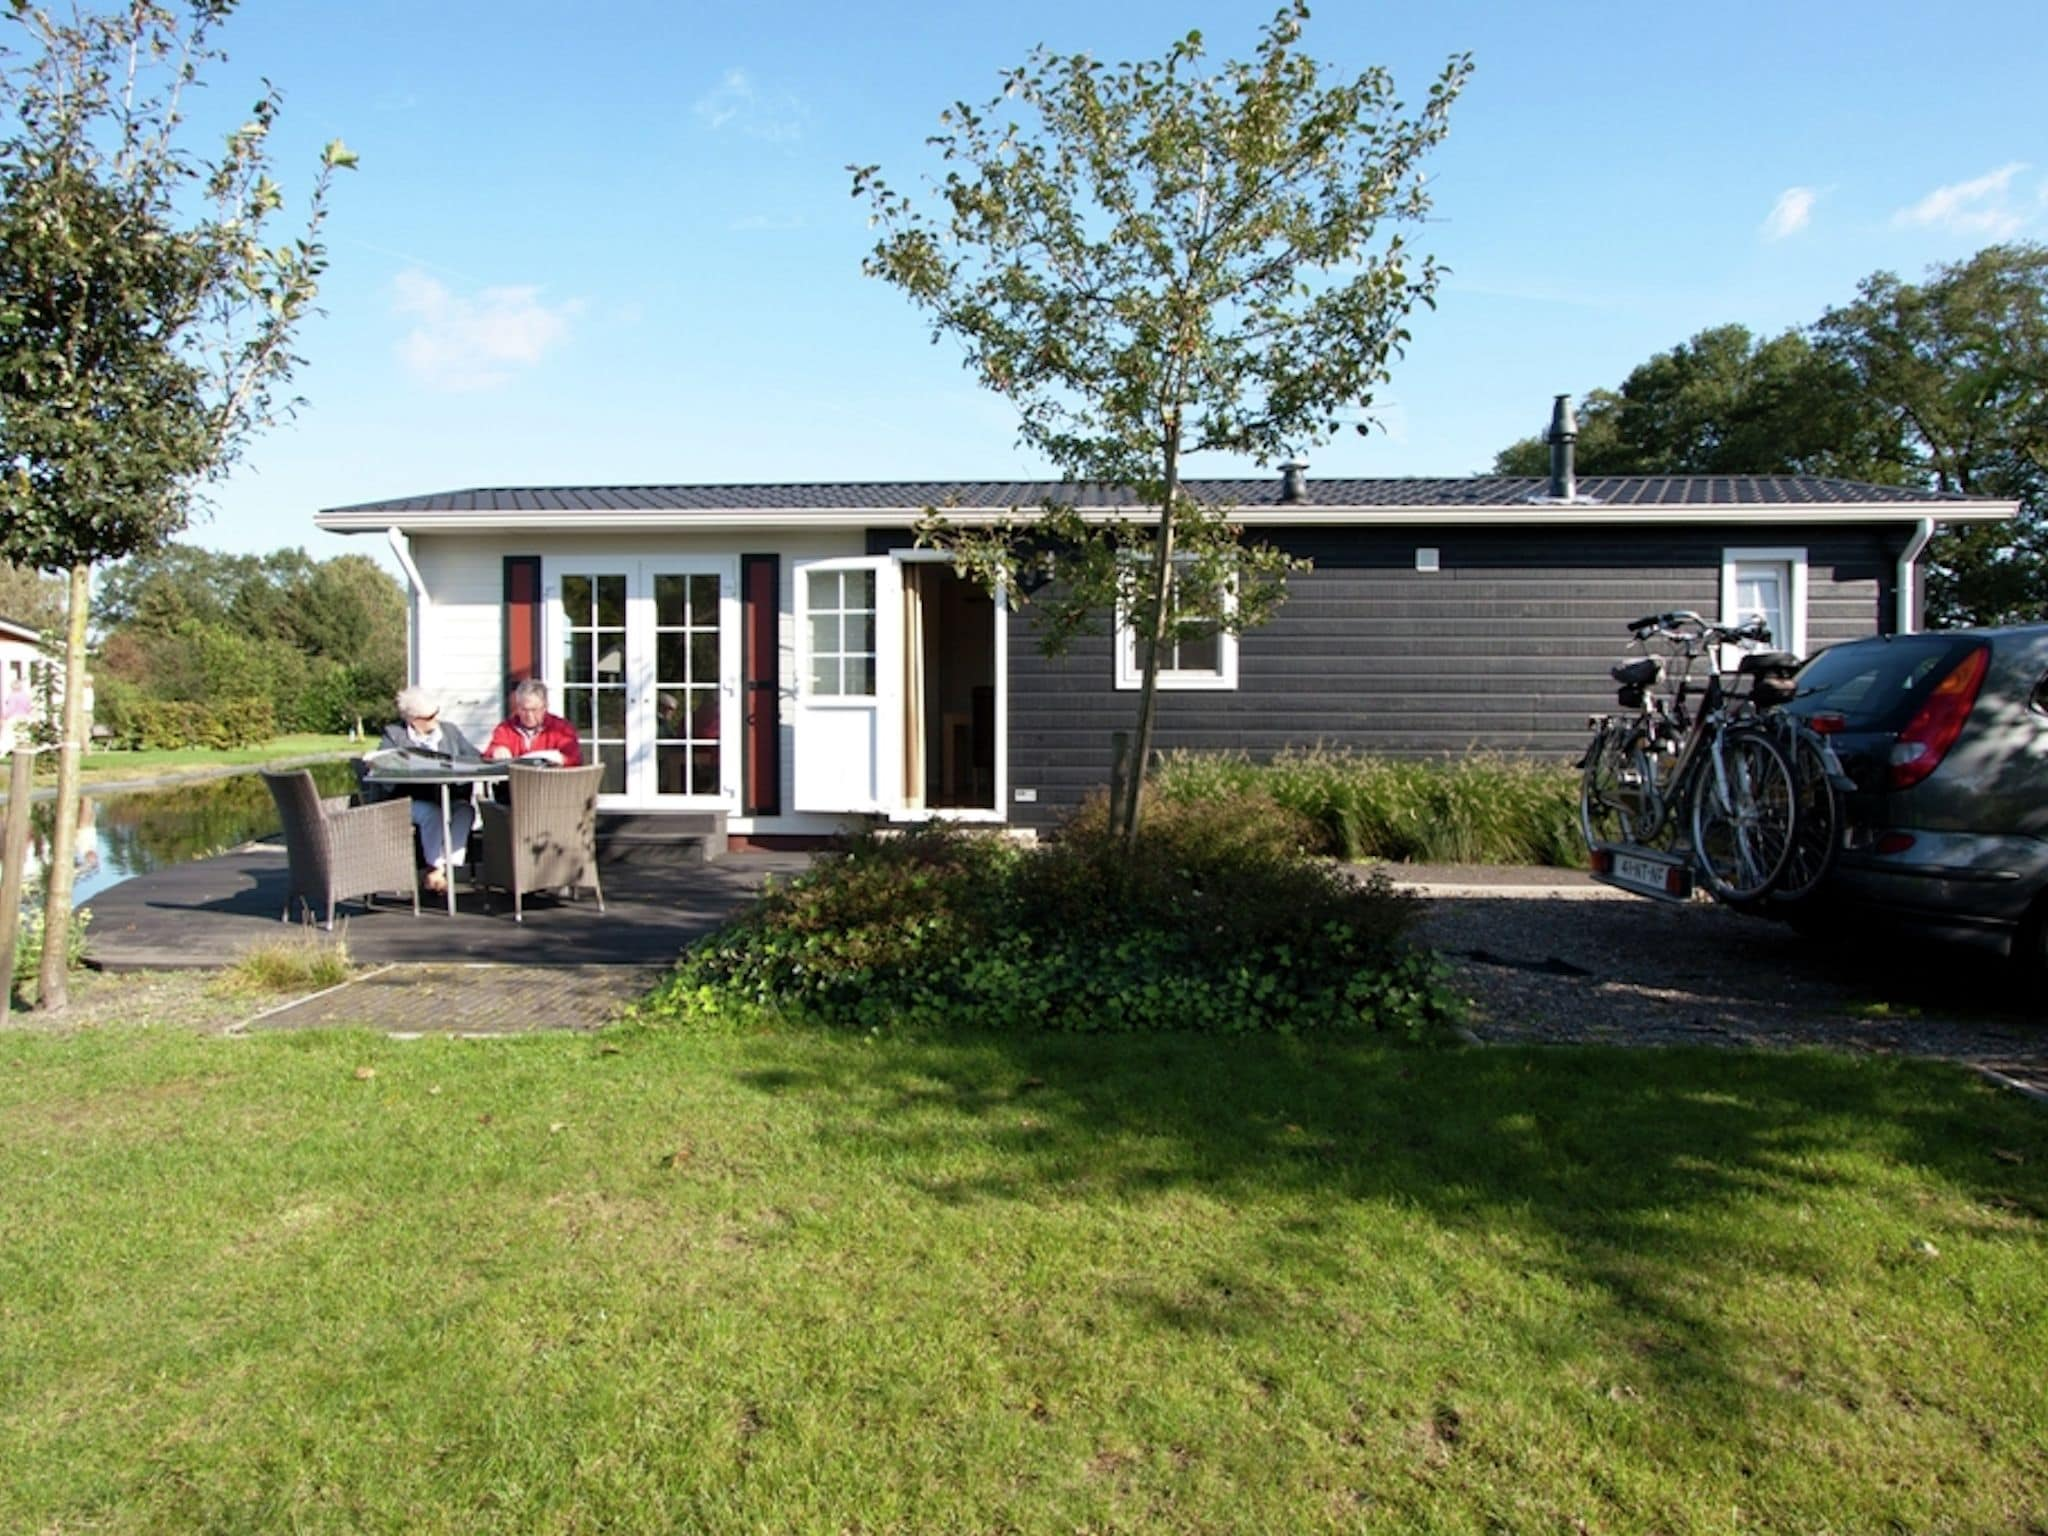 Holland | Overijssel | Holiday home Buitenplaats Holten - Korhoen 4-pers | all year | GardenSummer